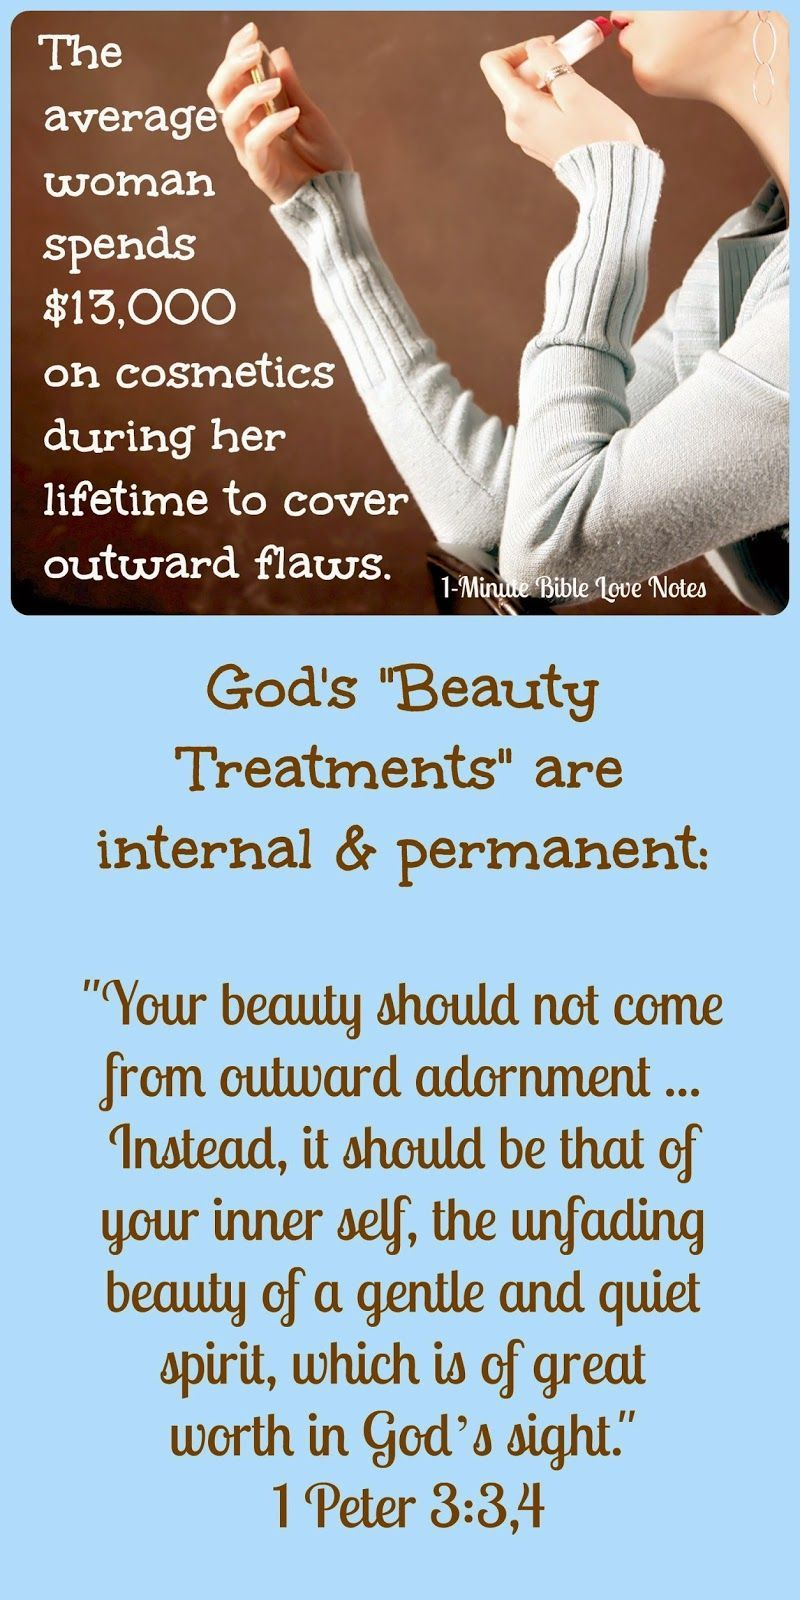 God Makes us Beautiful on the Inside 1-Minute Bible Love Notes: Non-Cosmetic Changes1-Minute Bible Love Notes: Non-Cosmetic Changes